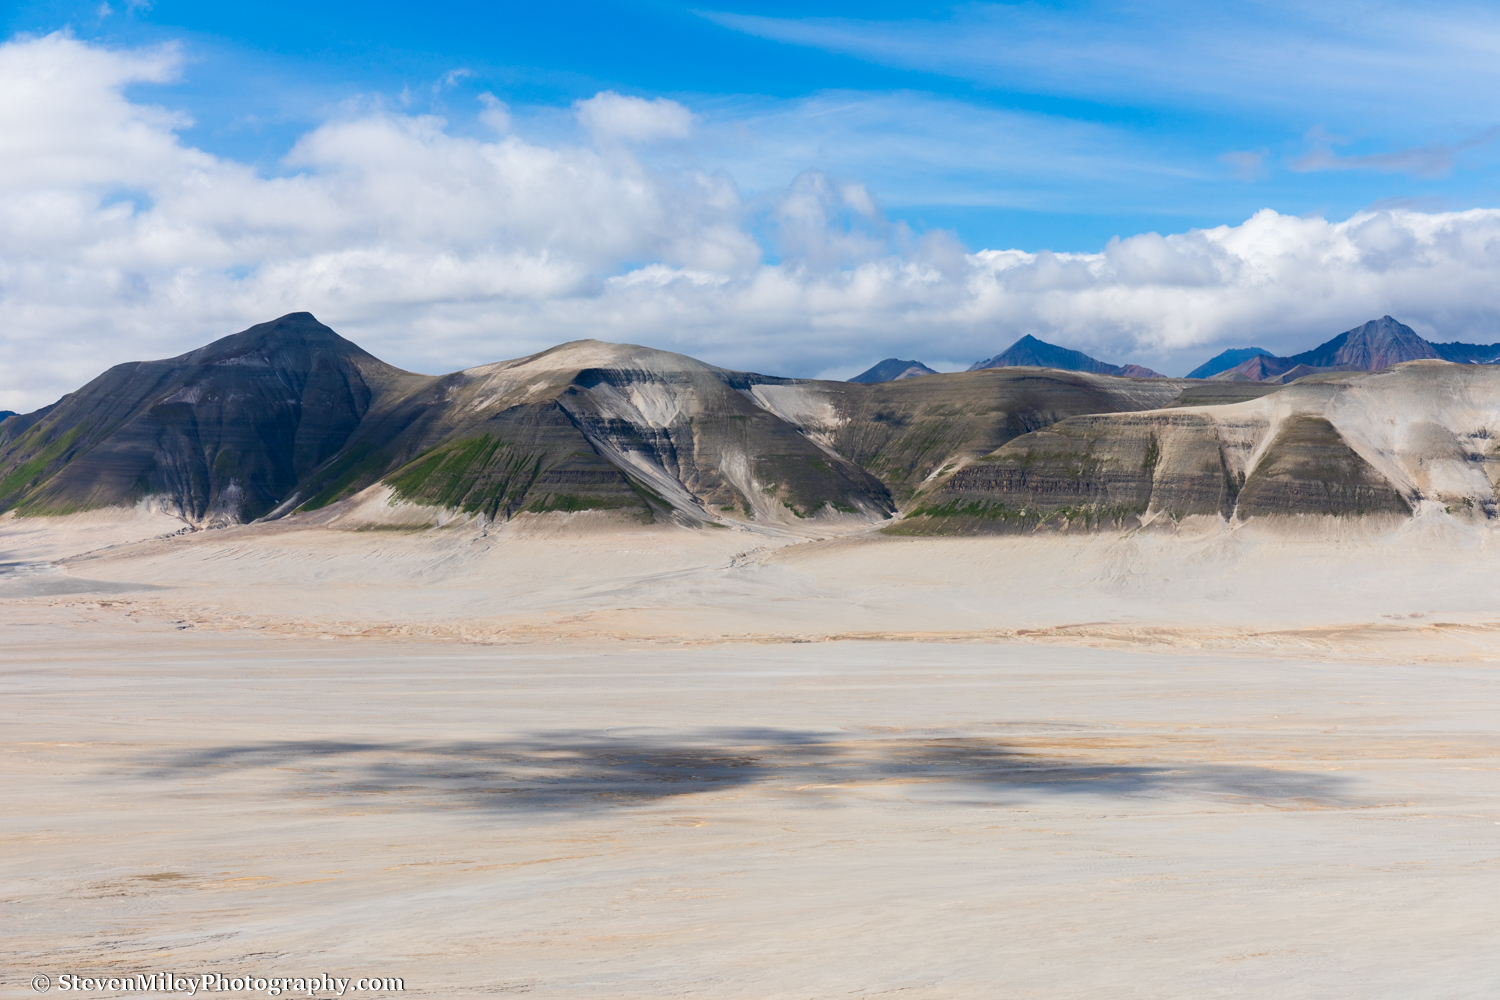 The Buttress Range along the western edge of the Valley of 10,000 Smokes in Katmai National Park, viewed from the side of Baked Mountain.